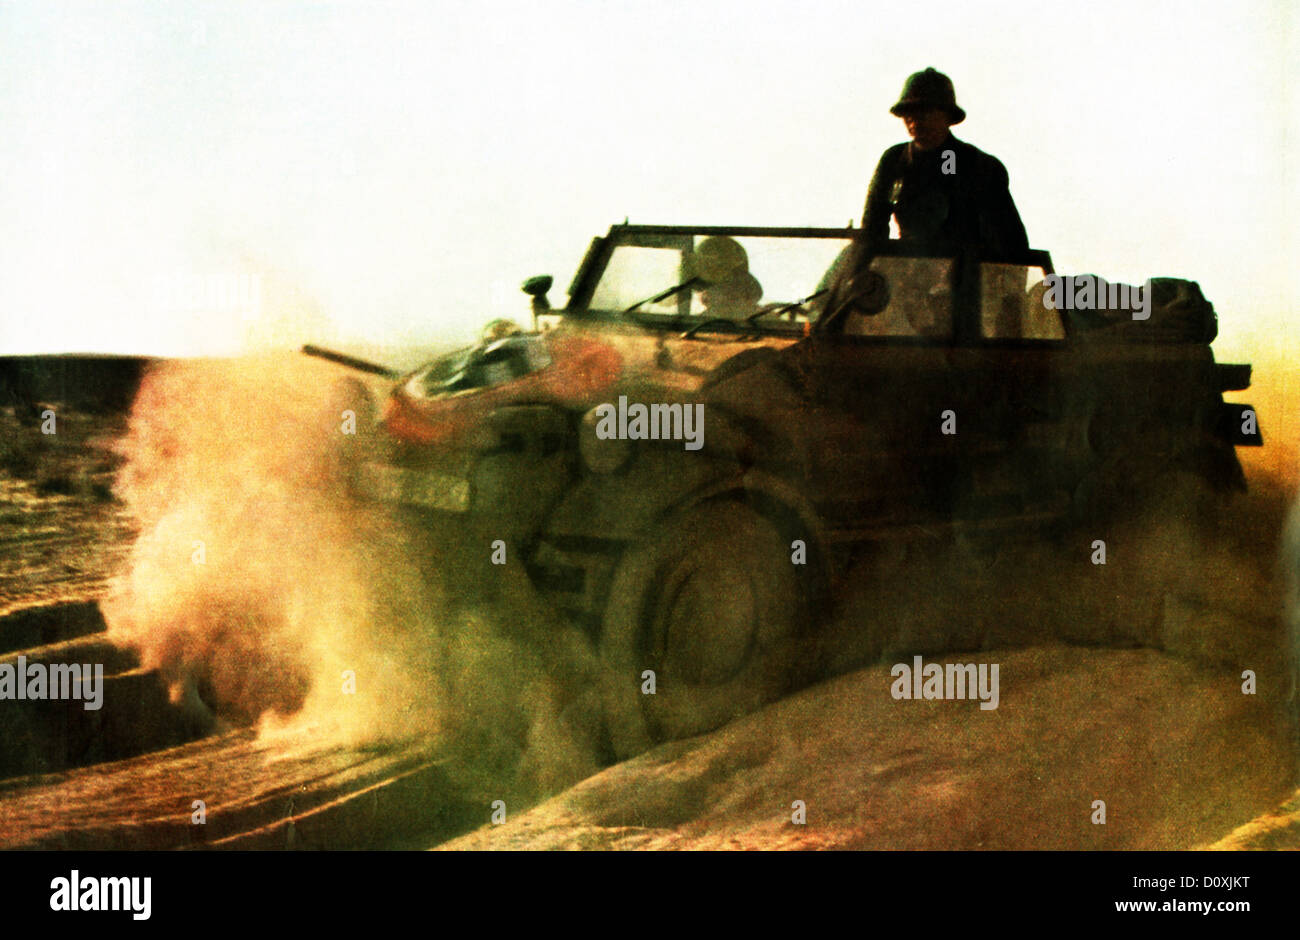 German, Africa, corps, jeep, Desert, vehicles, sand, soldiers, African Campaign, Afrikacorps, 1942, Rommel, World - Stock Image